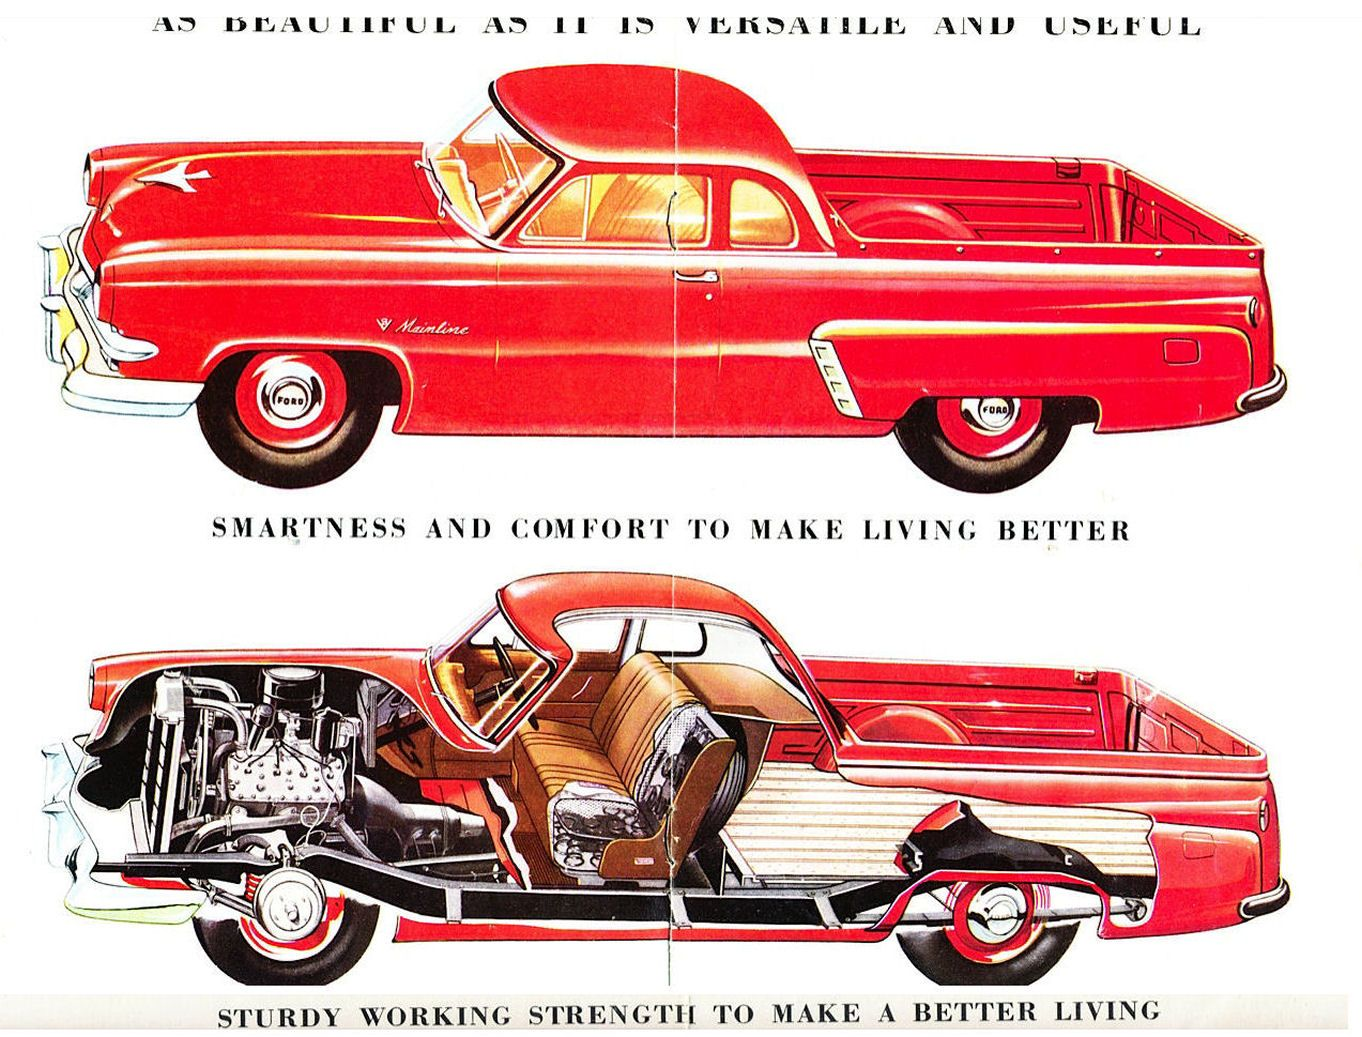 1953 Ford V8 Mainline Coupe Utility Australia Pages 6 7 Trunk Locks Wiring Diagram Of 1958 Edsel And 59 Lincoln